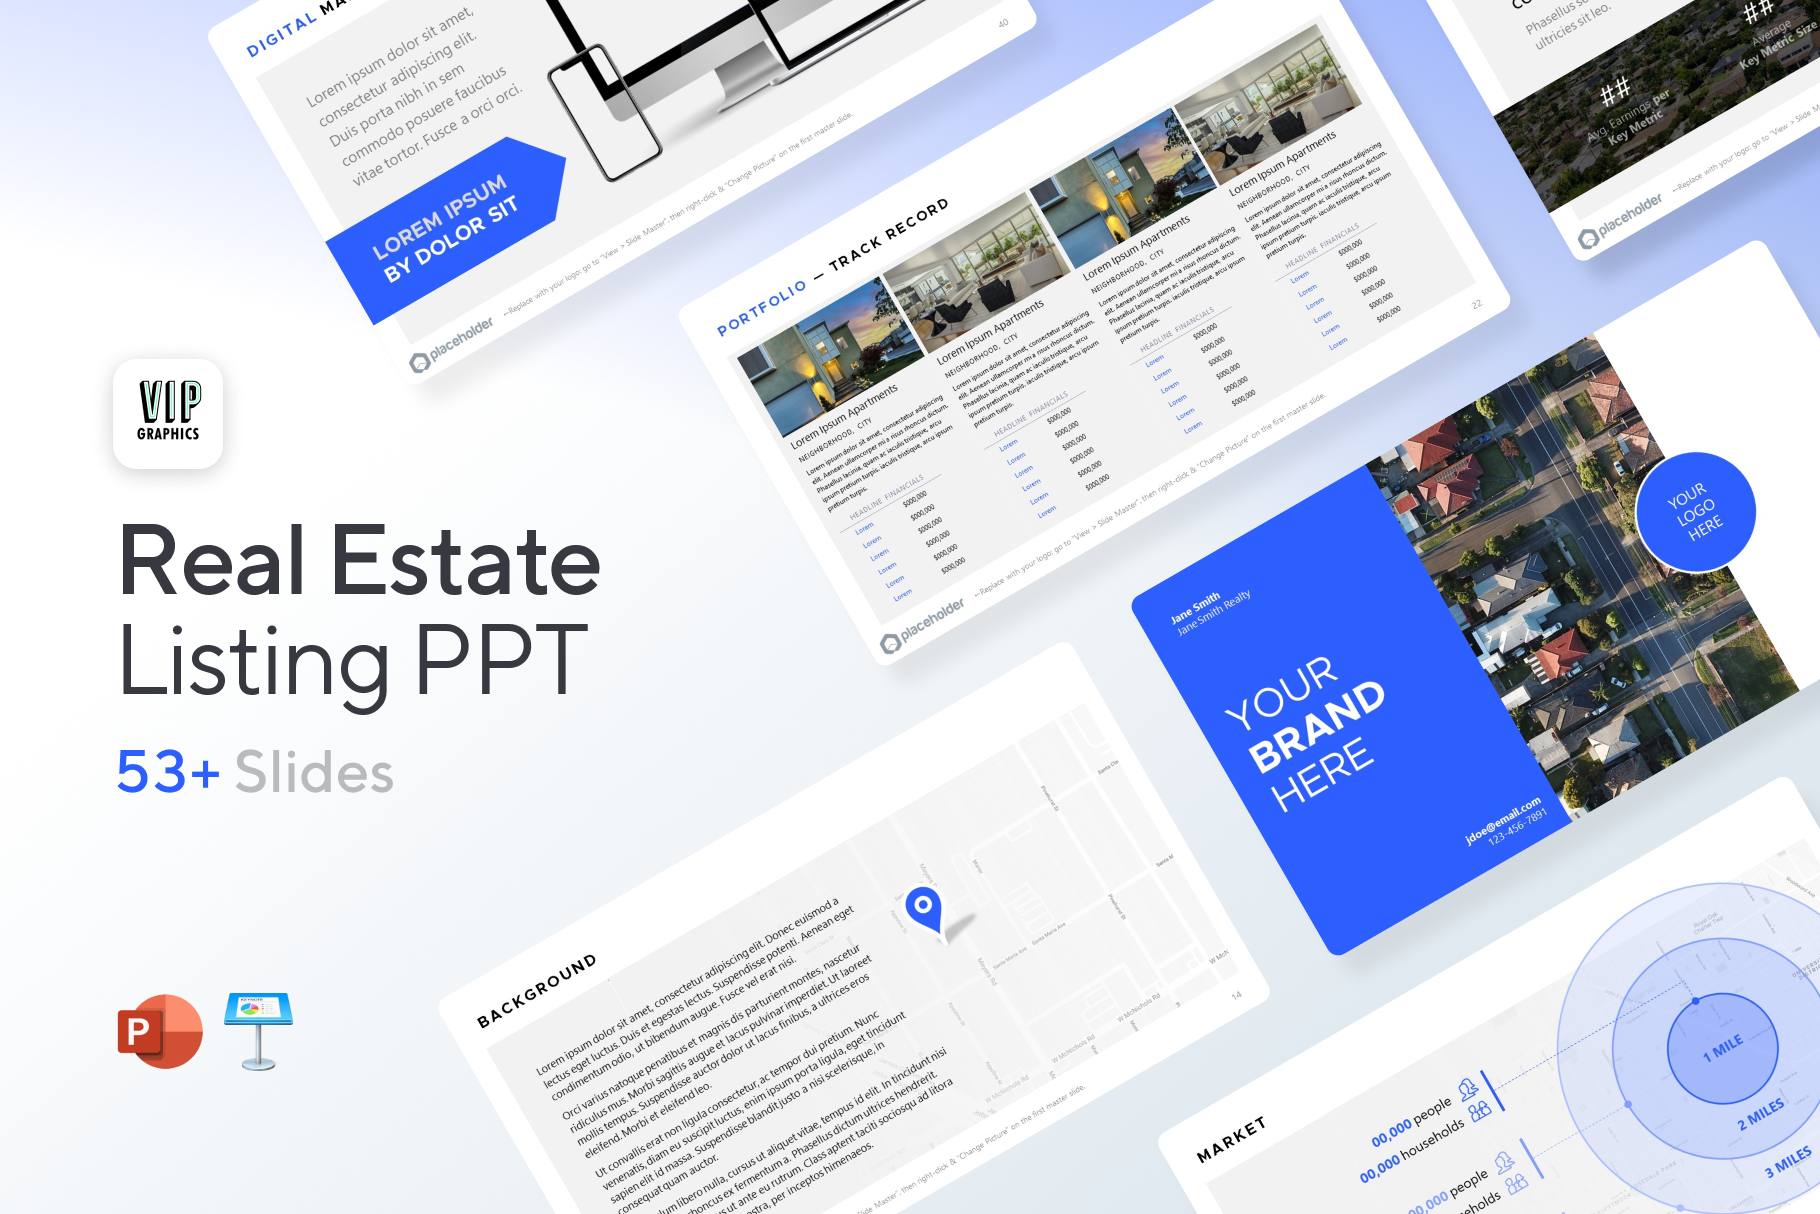 Real Estate Listing Presentation Template for PowerPoint & Keynote | VIP.graphics